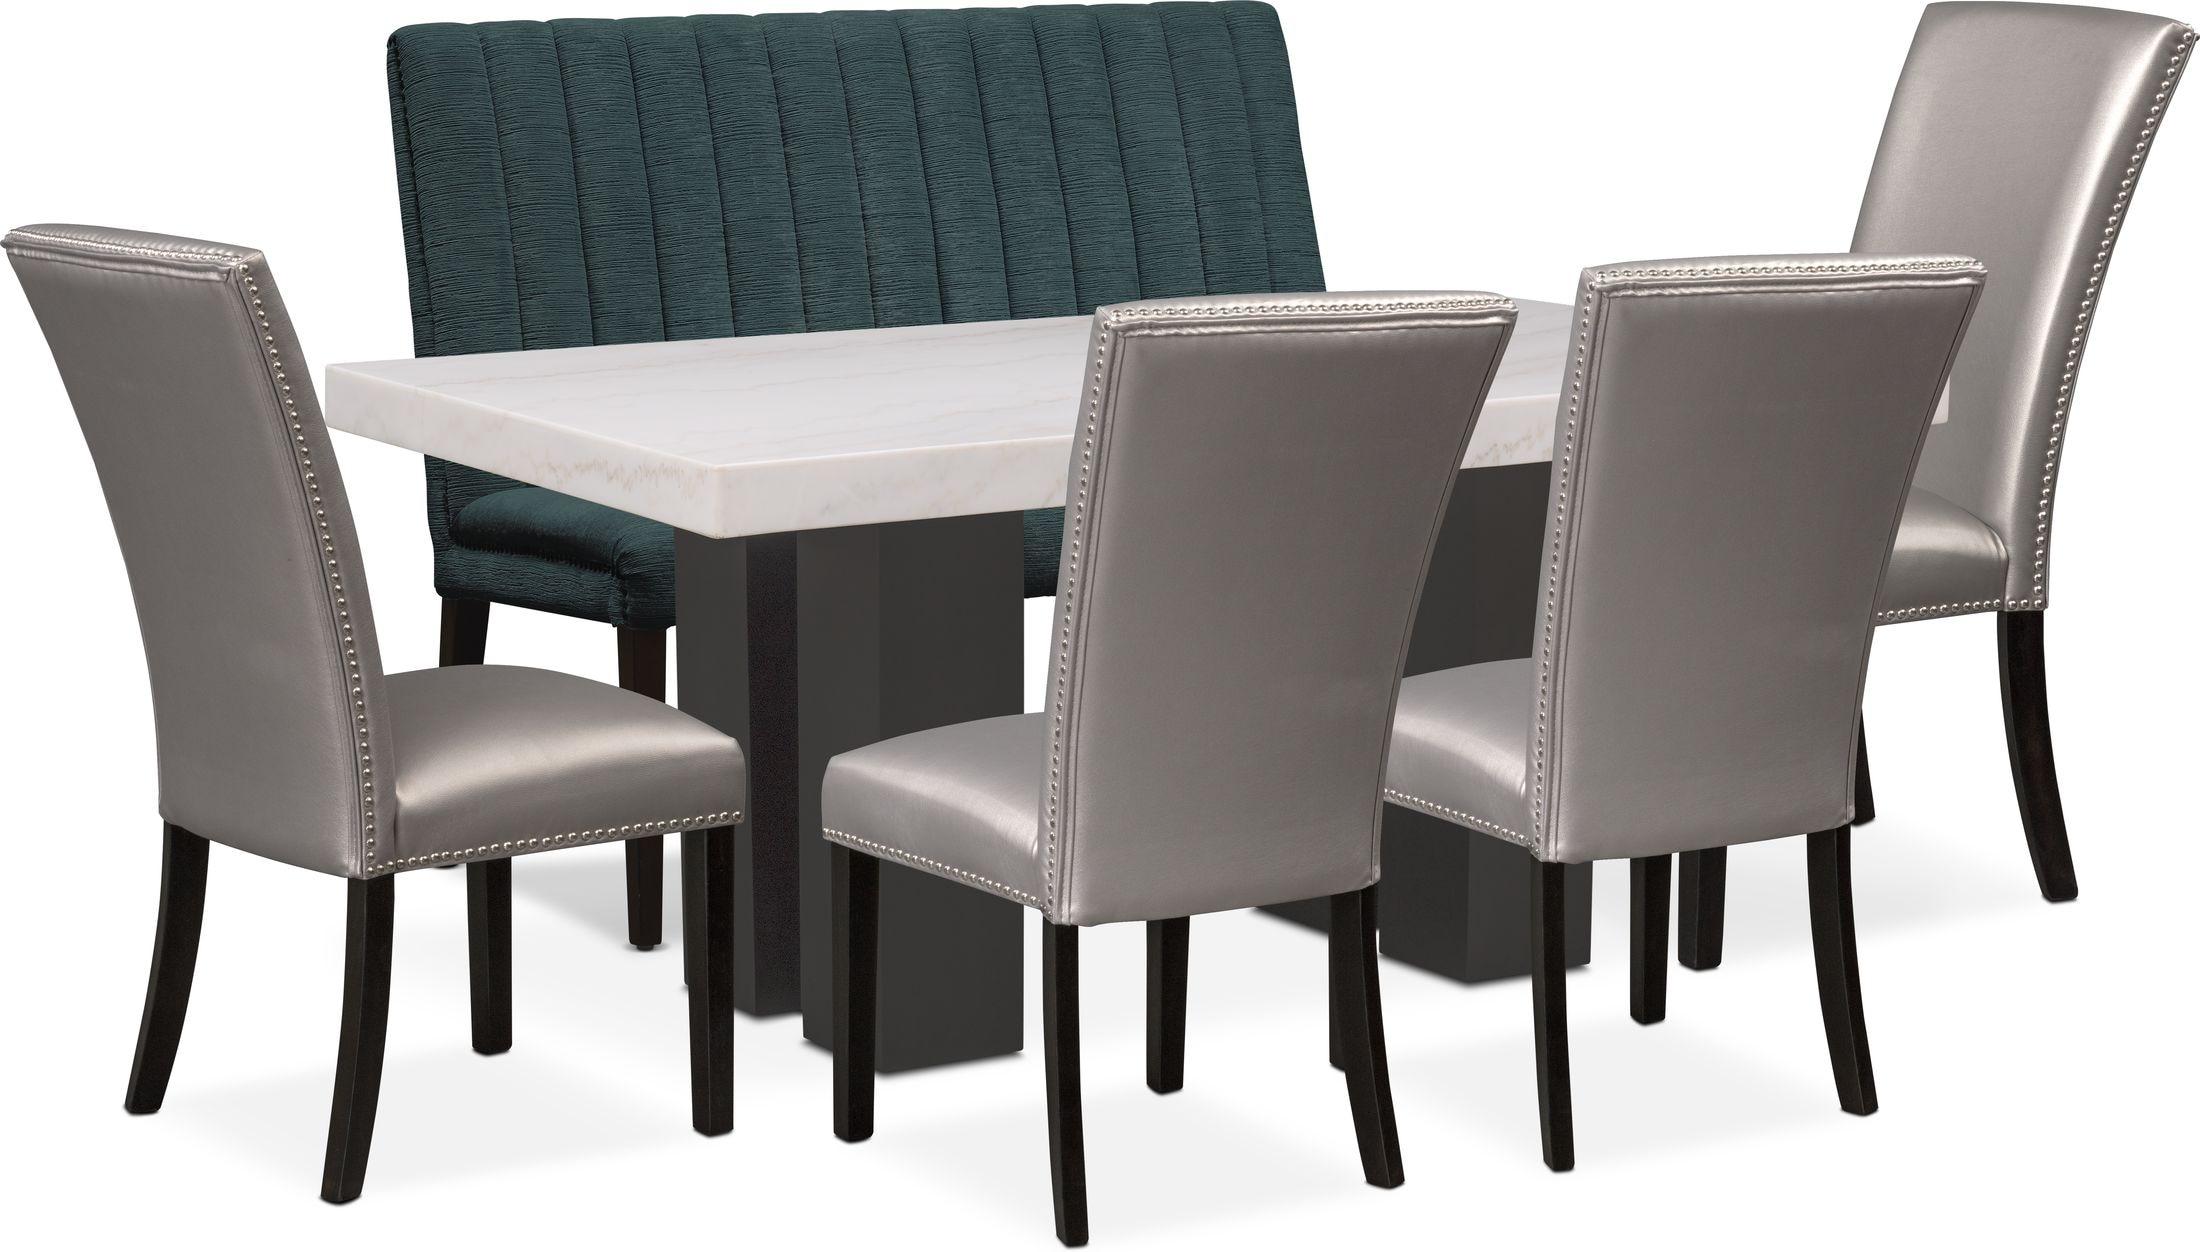 Dining Room Furniture - Artemis Marble Dining Table, 4 Upholstered Dining Chairs, and Bench - Gray/Teal